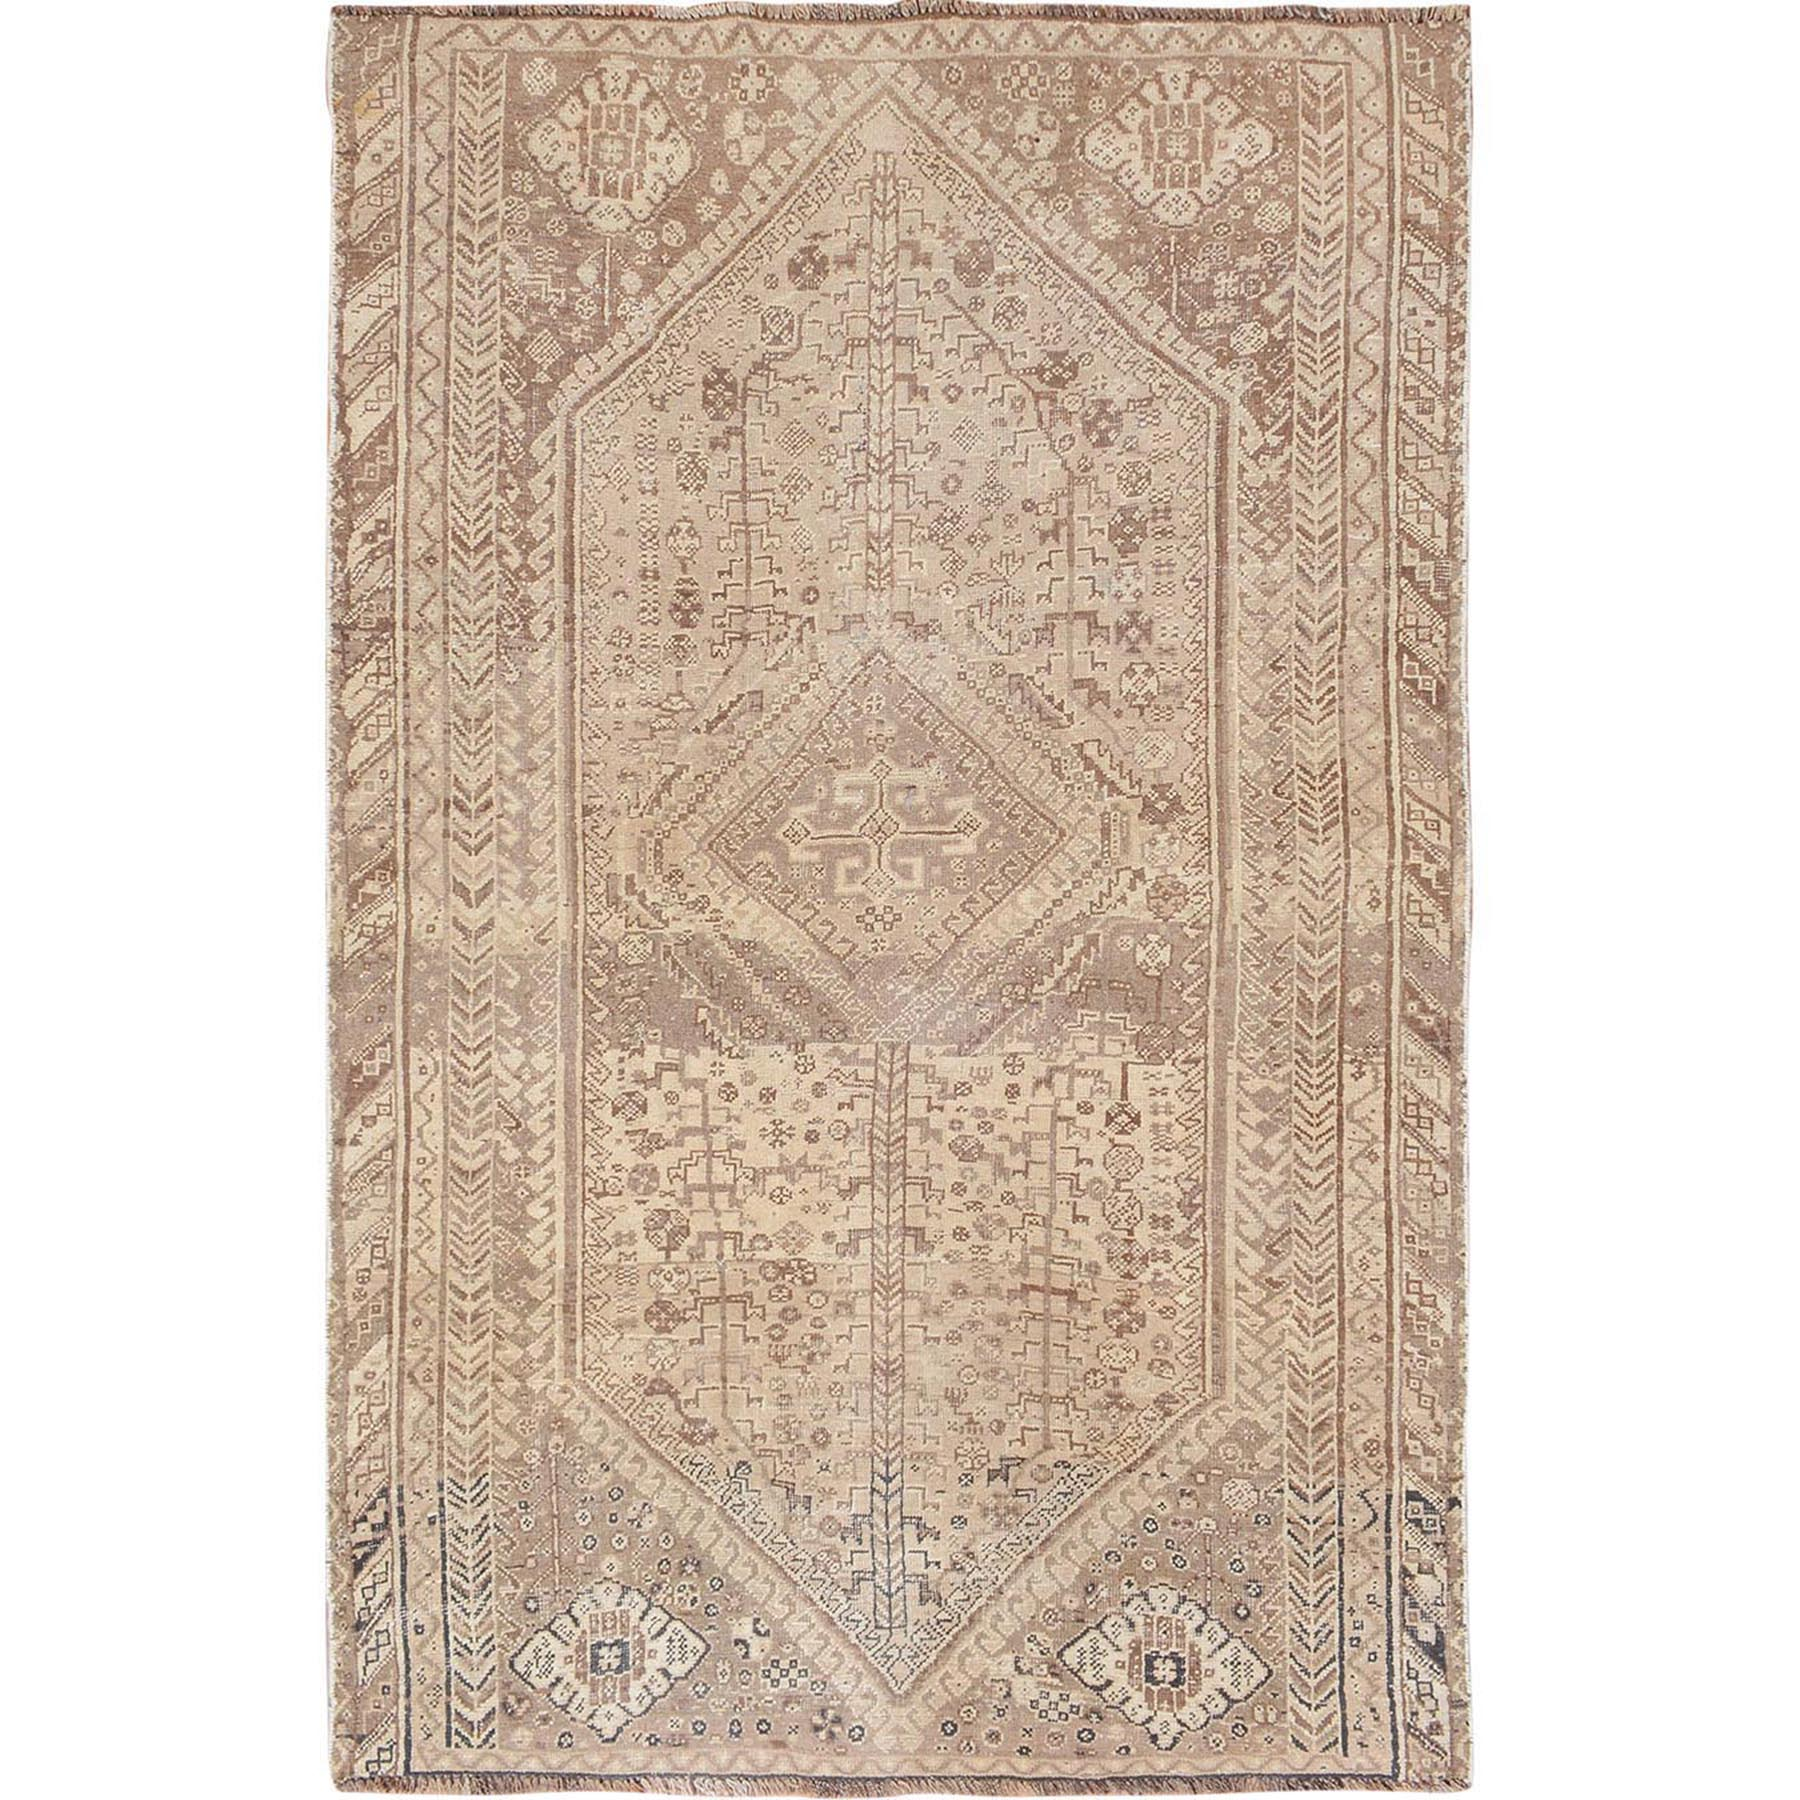 "4'9""x7'2"" Natural Colors Old and Worn Down Persian Shiraz Hand Woven Oriental Rug"